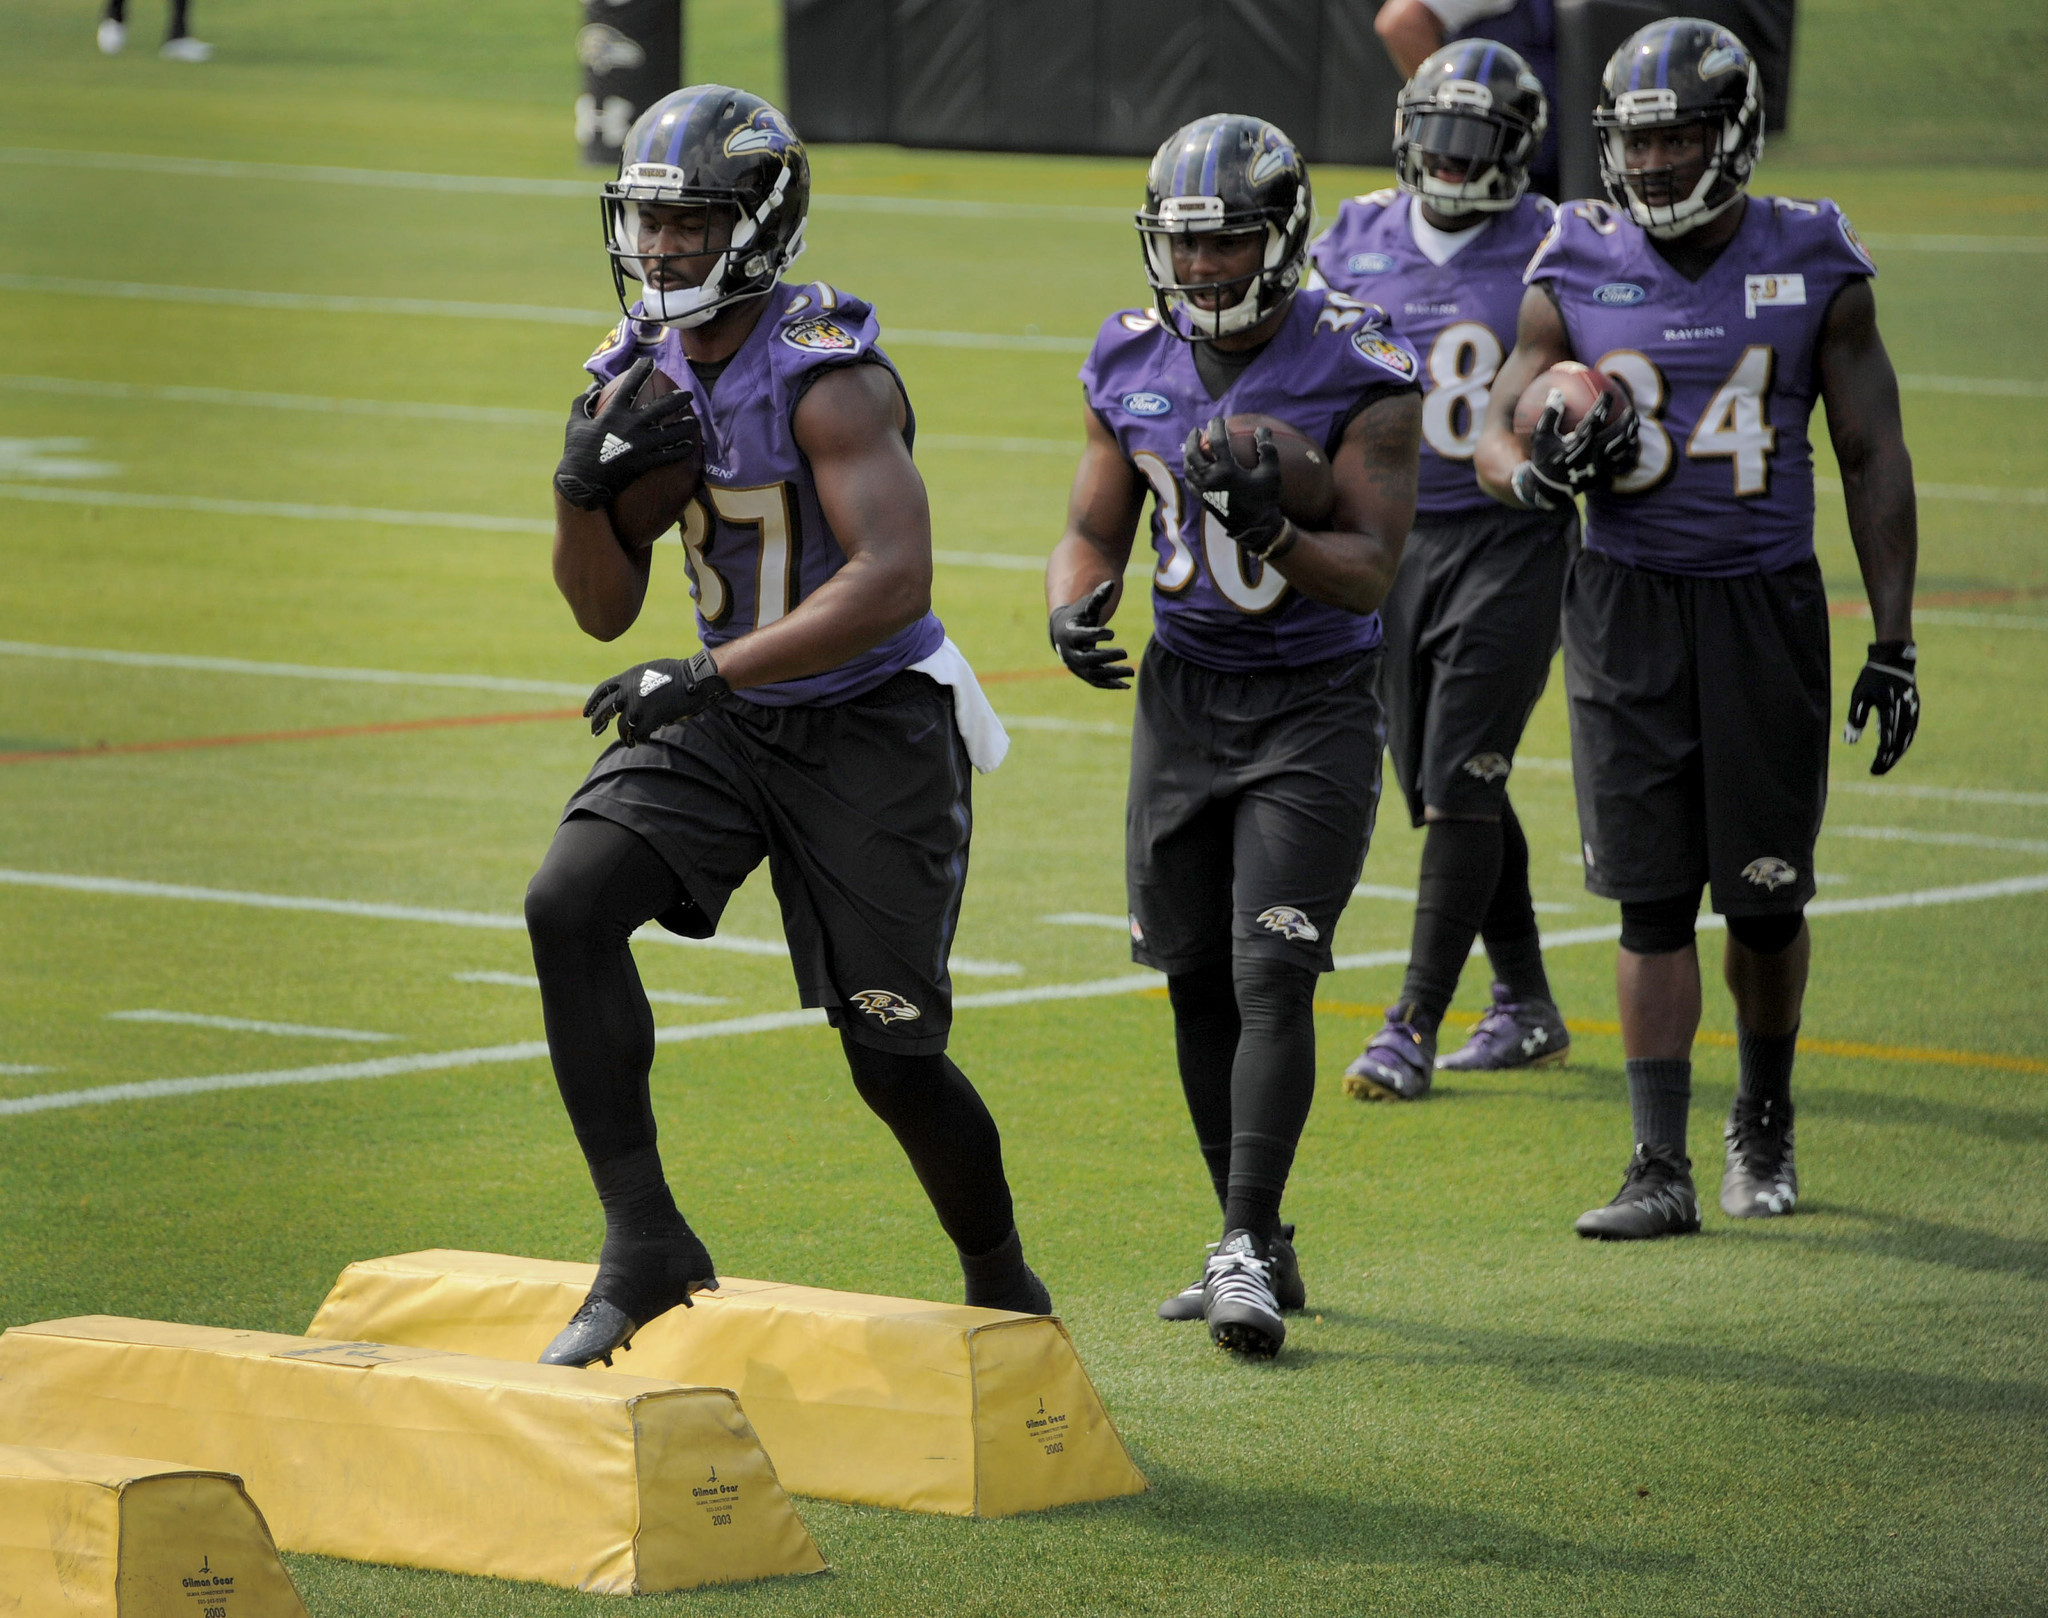 Bal-mike-preston-ravens-tight-end-corps-gives-team-newfound-flexibility-and-other-practice-observations-20160616